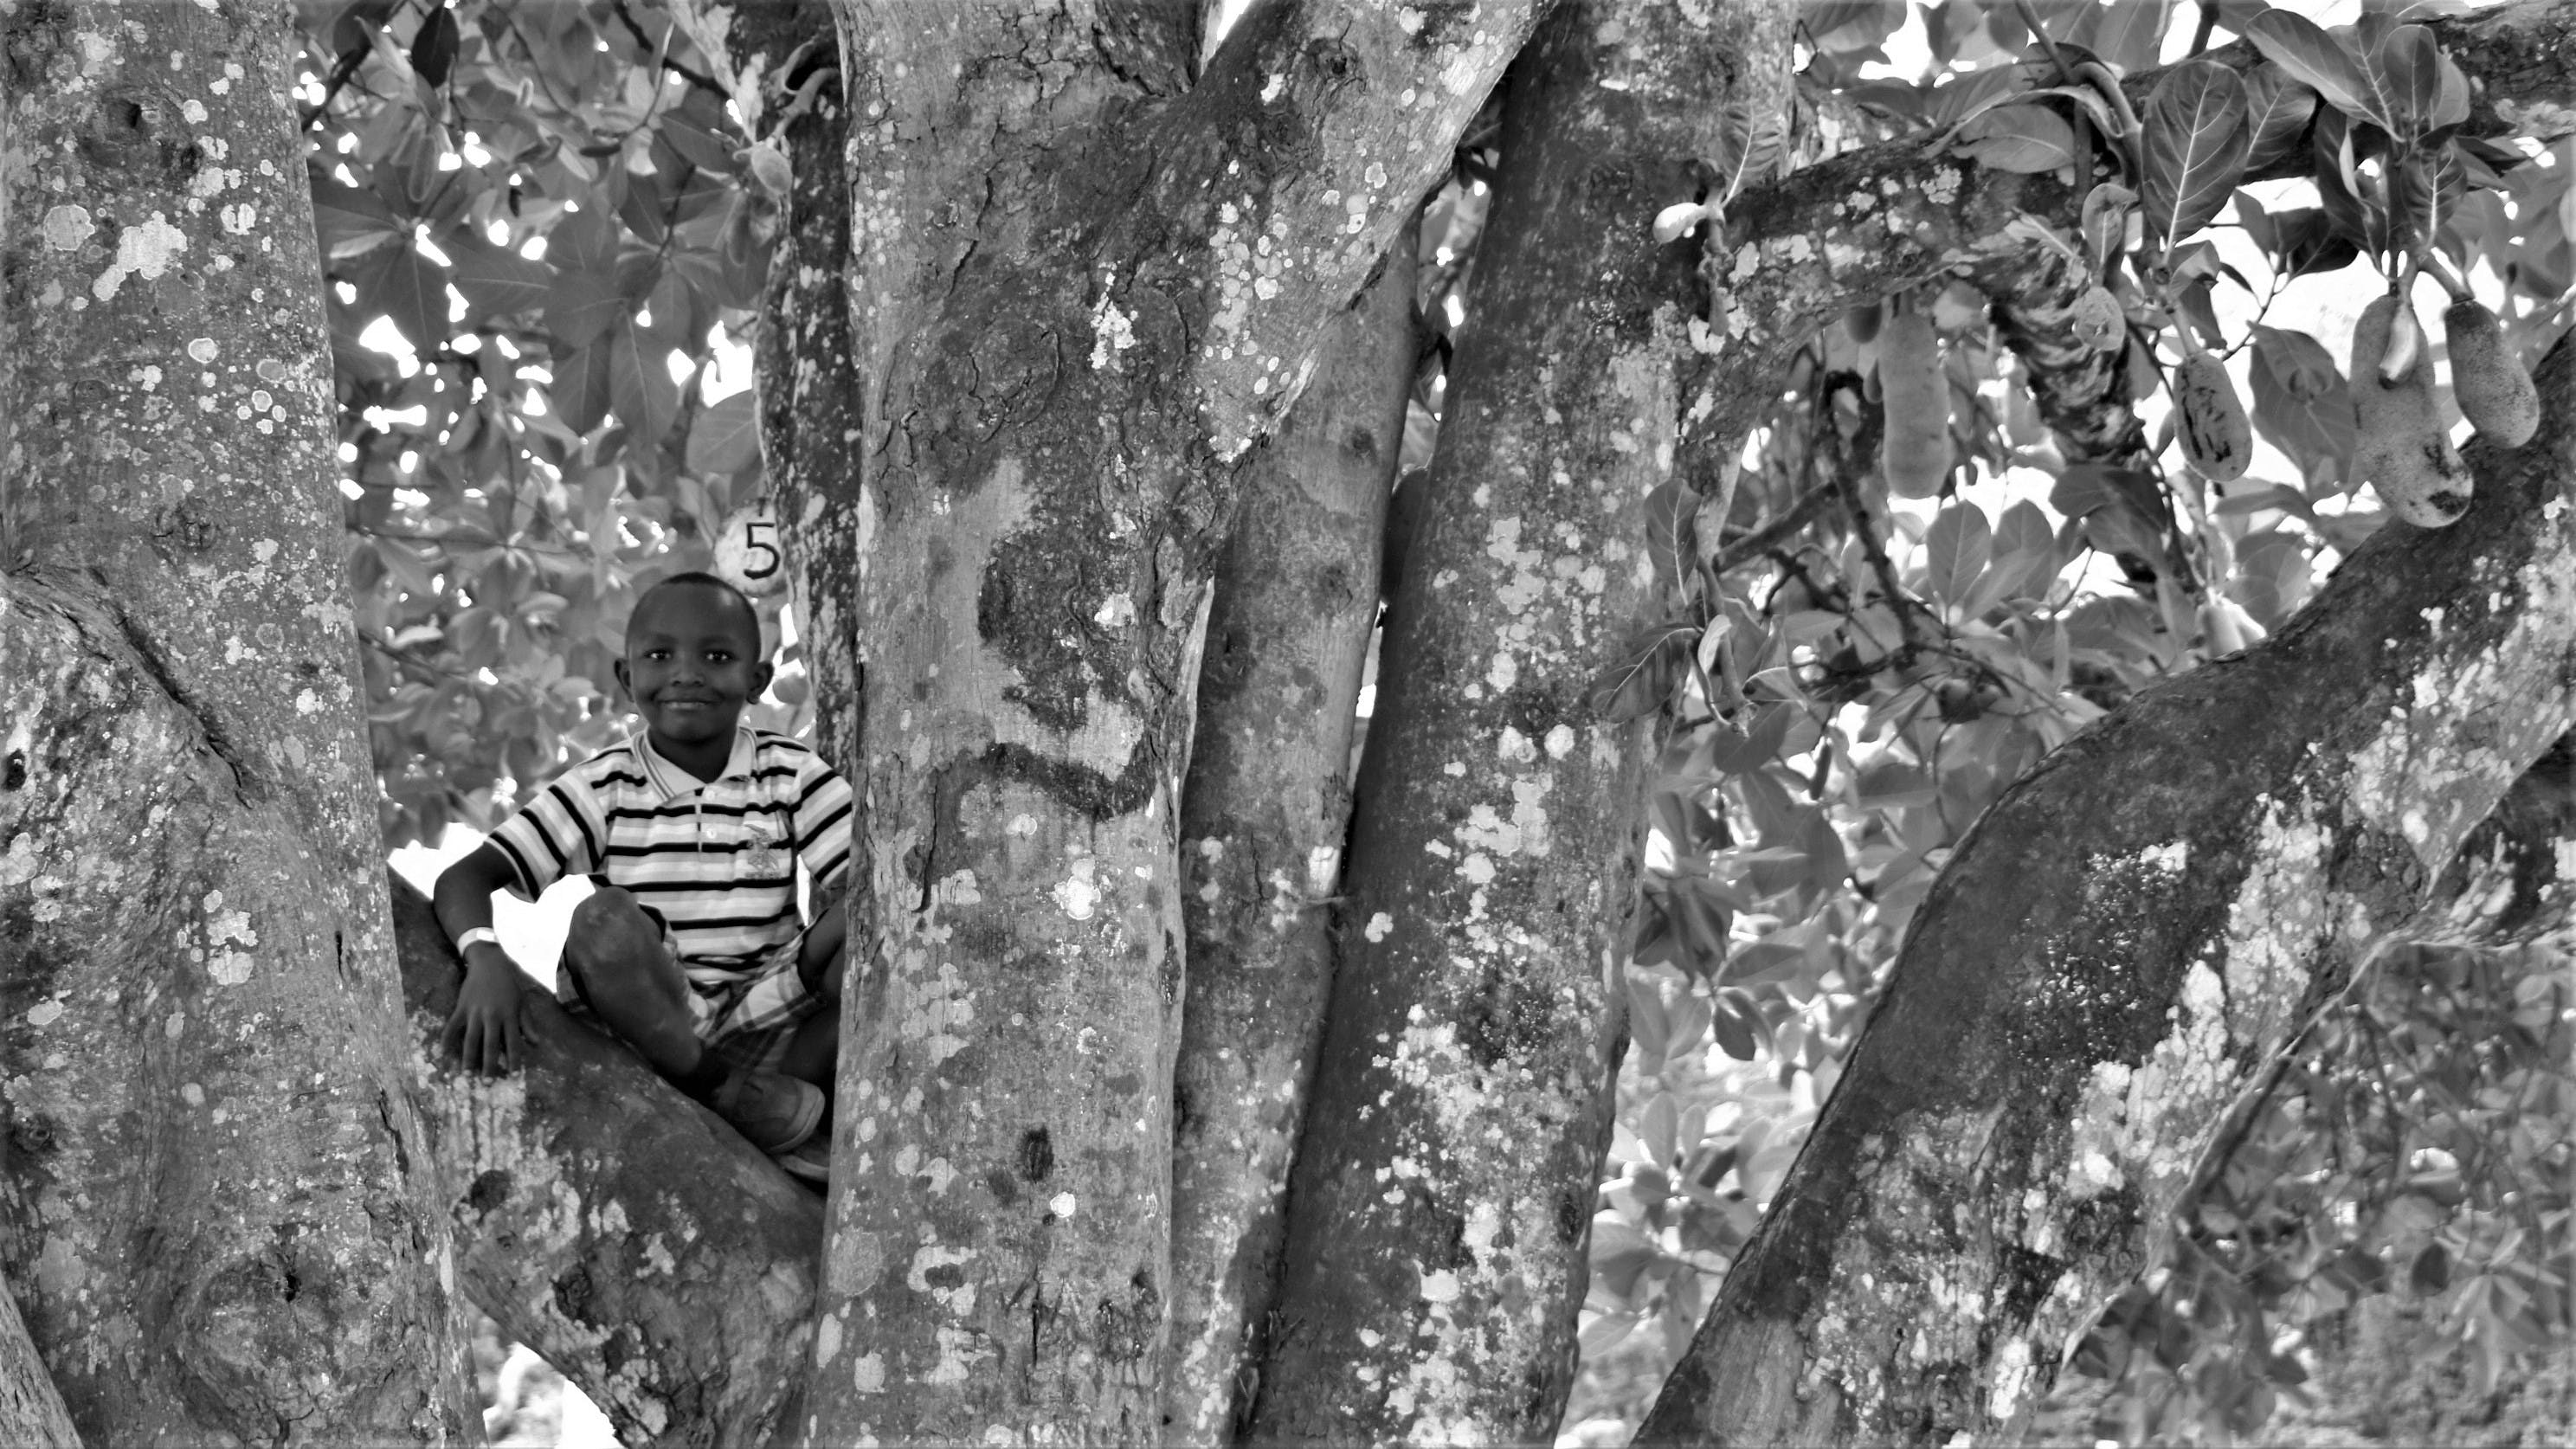 Grayscale Photo of Boy Sitting on Gray Tree Trunk